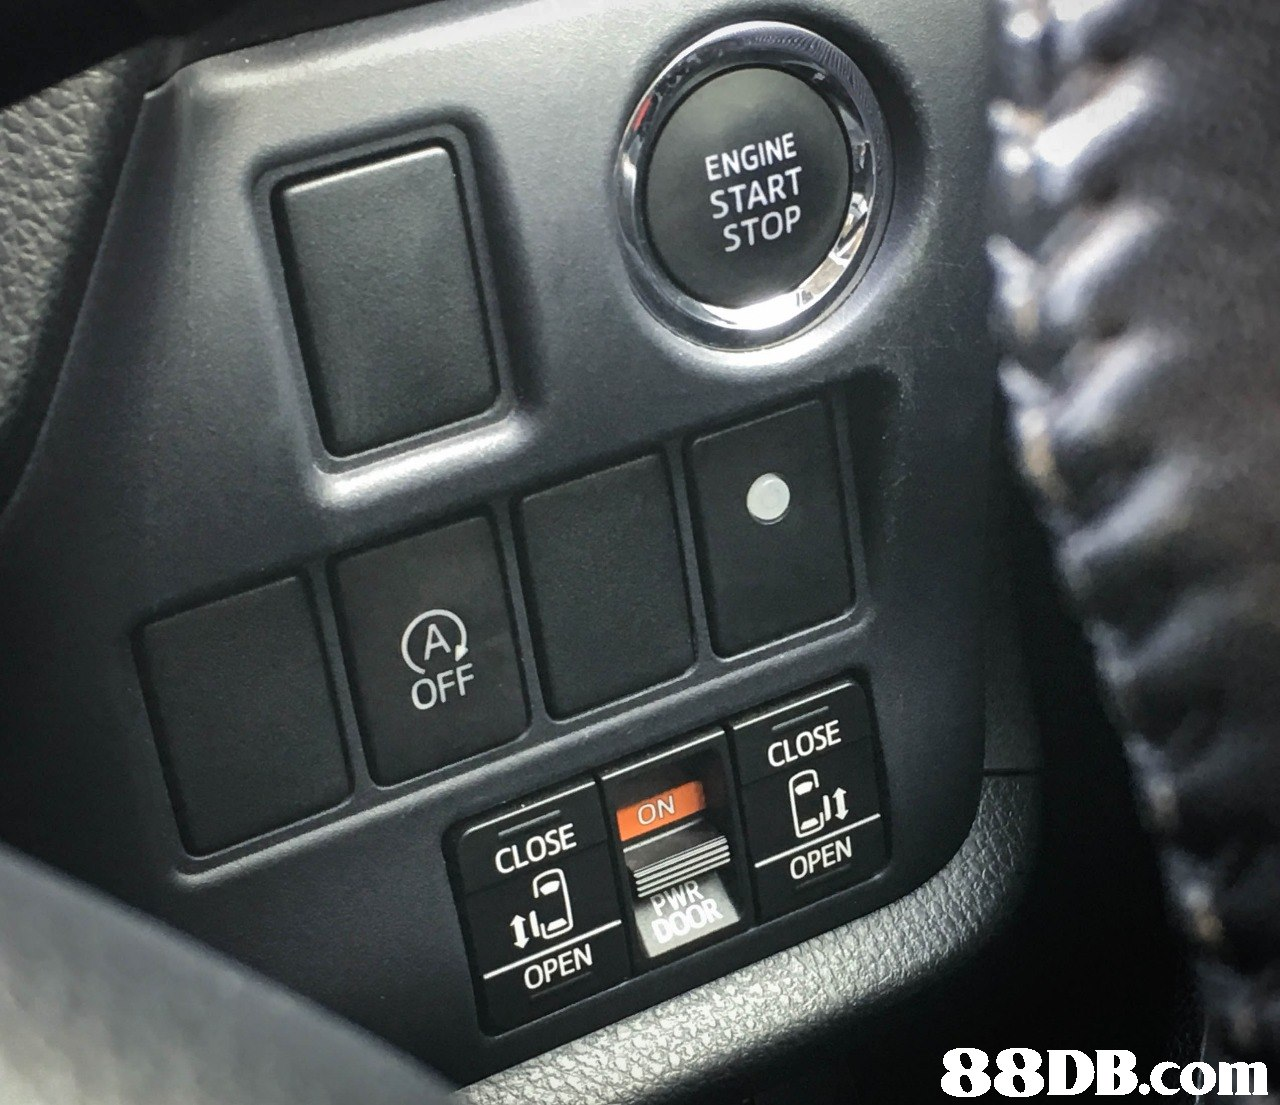 ENGINE START STOP OFF CLOSE CLOSE ON OPEN OPEN   Land vehicle,Vehicle,Car